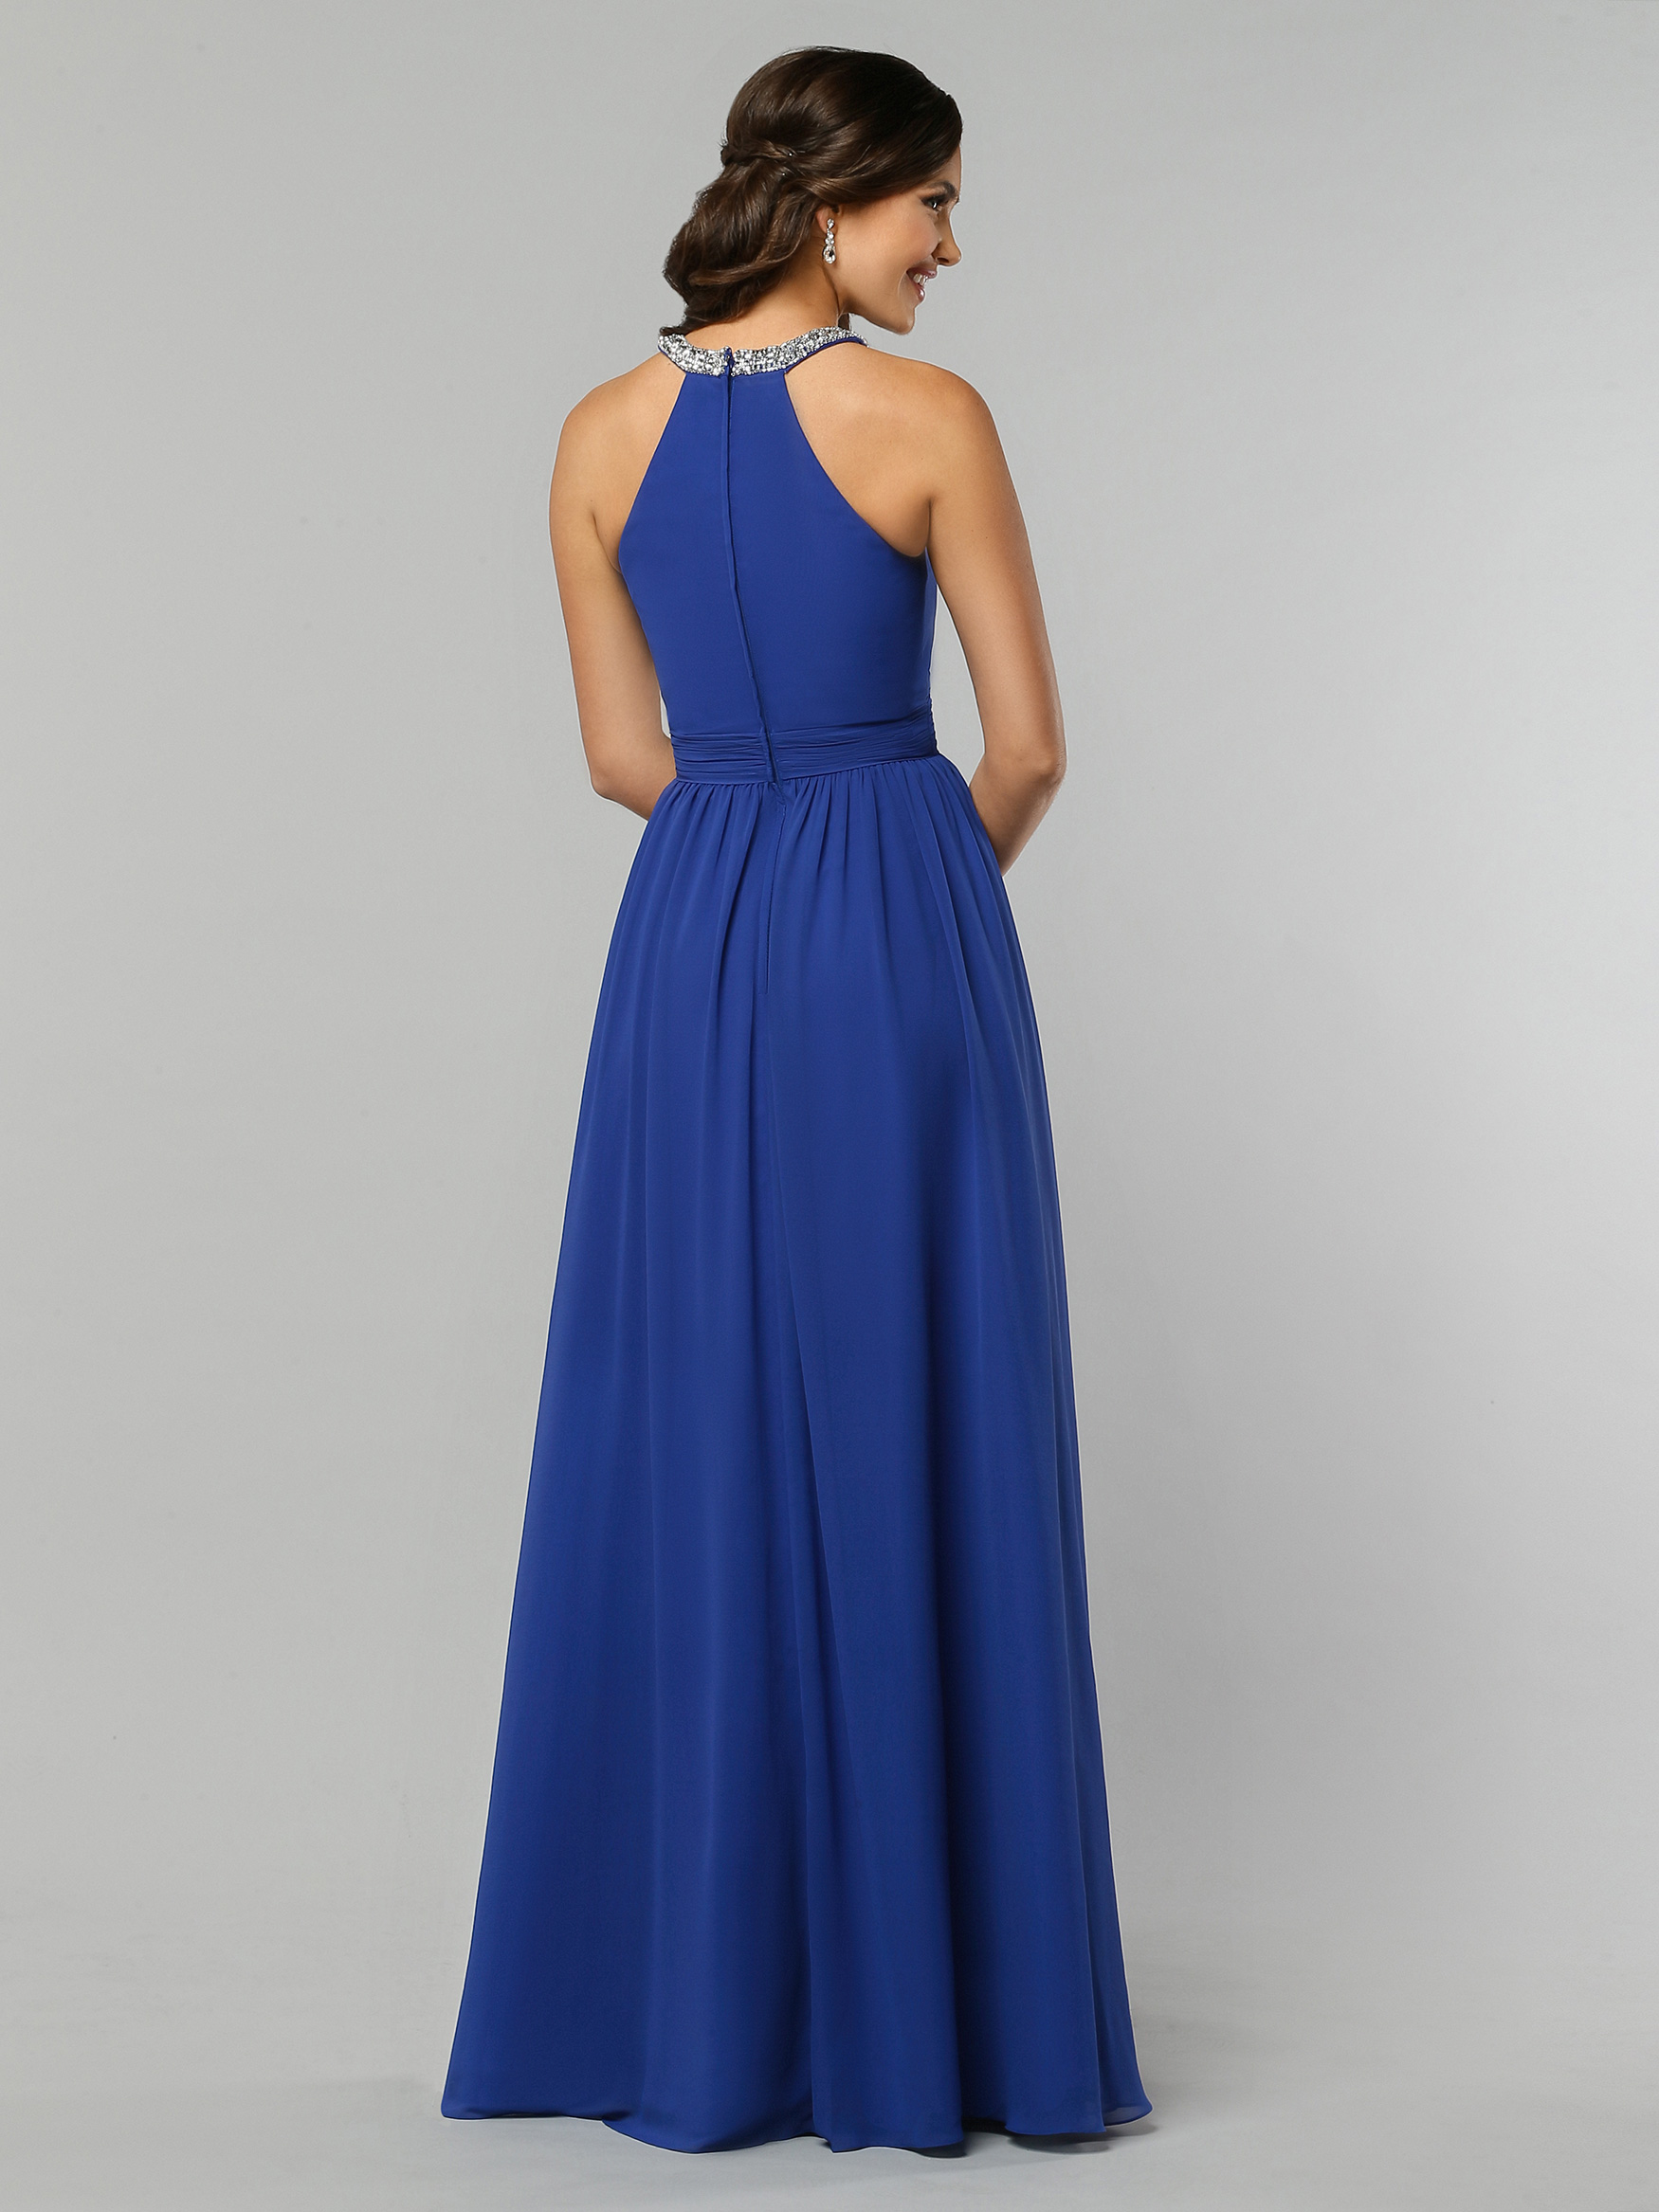 Bridesmaid dresses davinci bridal image showing back view of style 60326 ombrellifo Choice Image